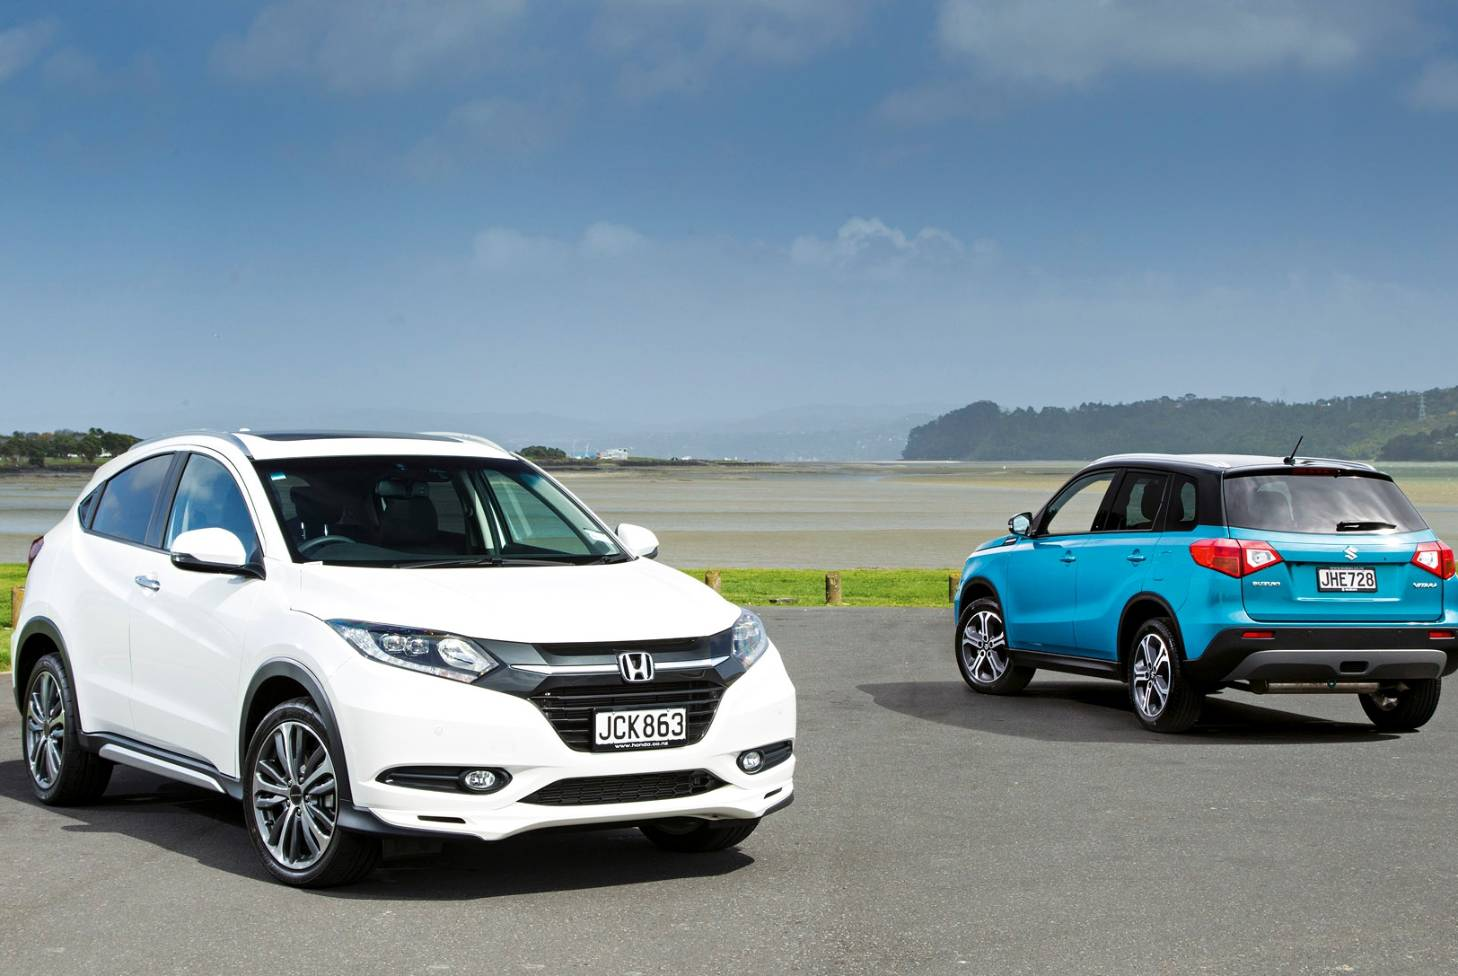 Honda Hrv Avis Head To Head Honda Hr V V Suzuki Vitara Stuff Co Nz